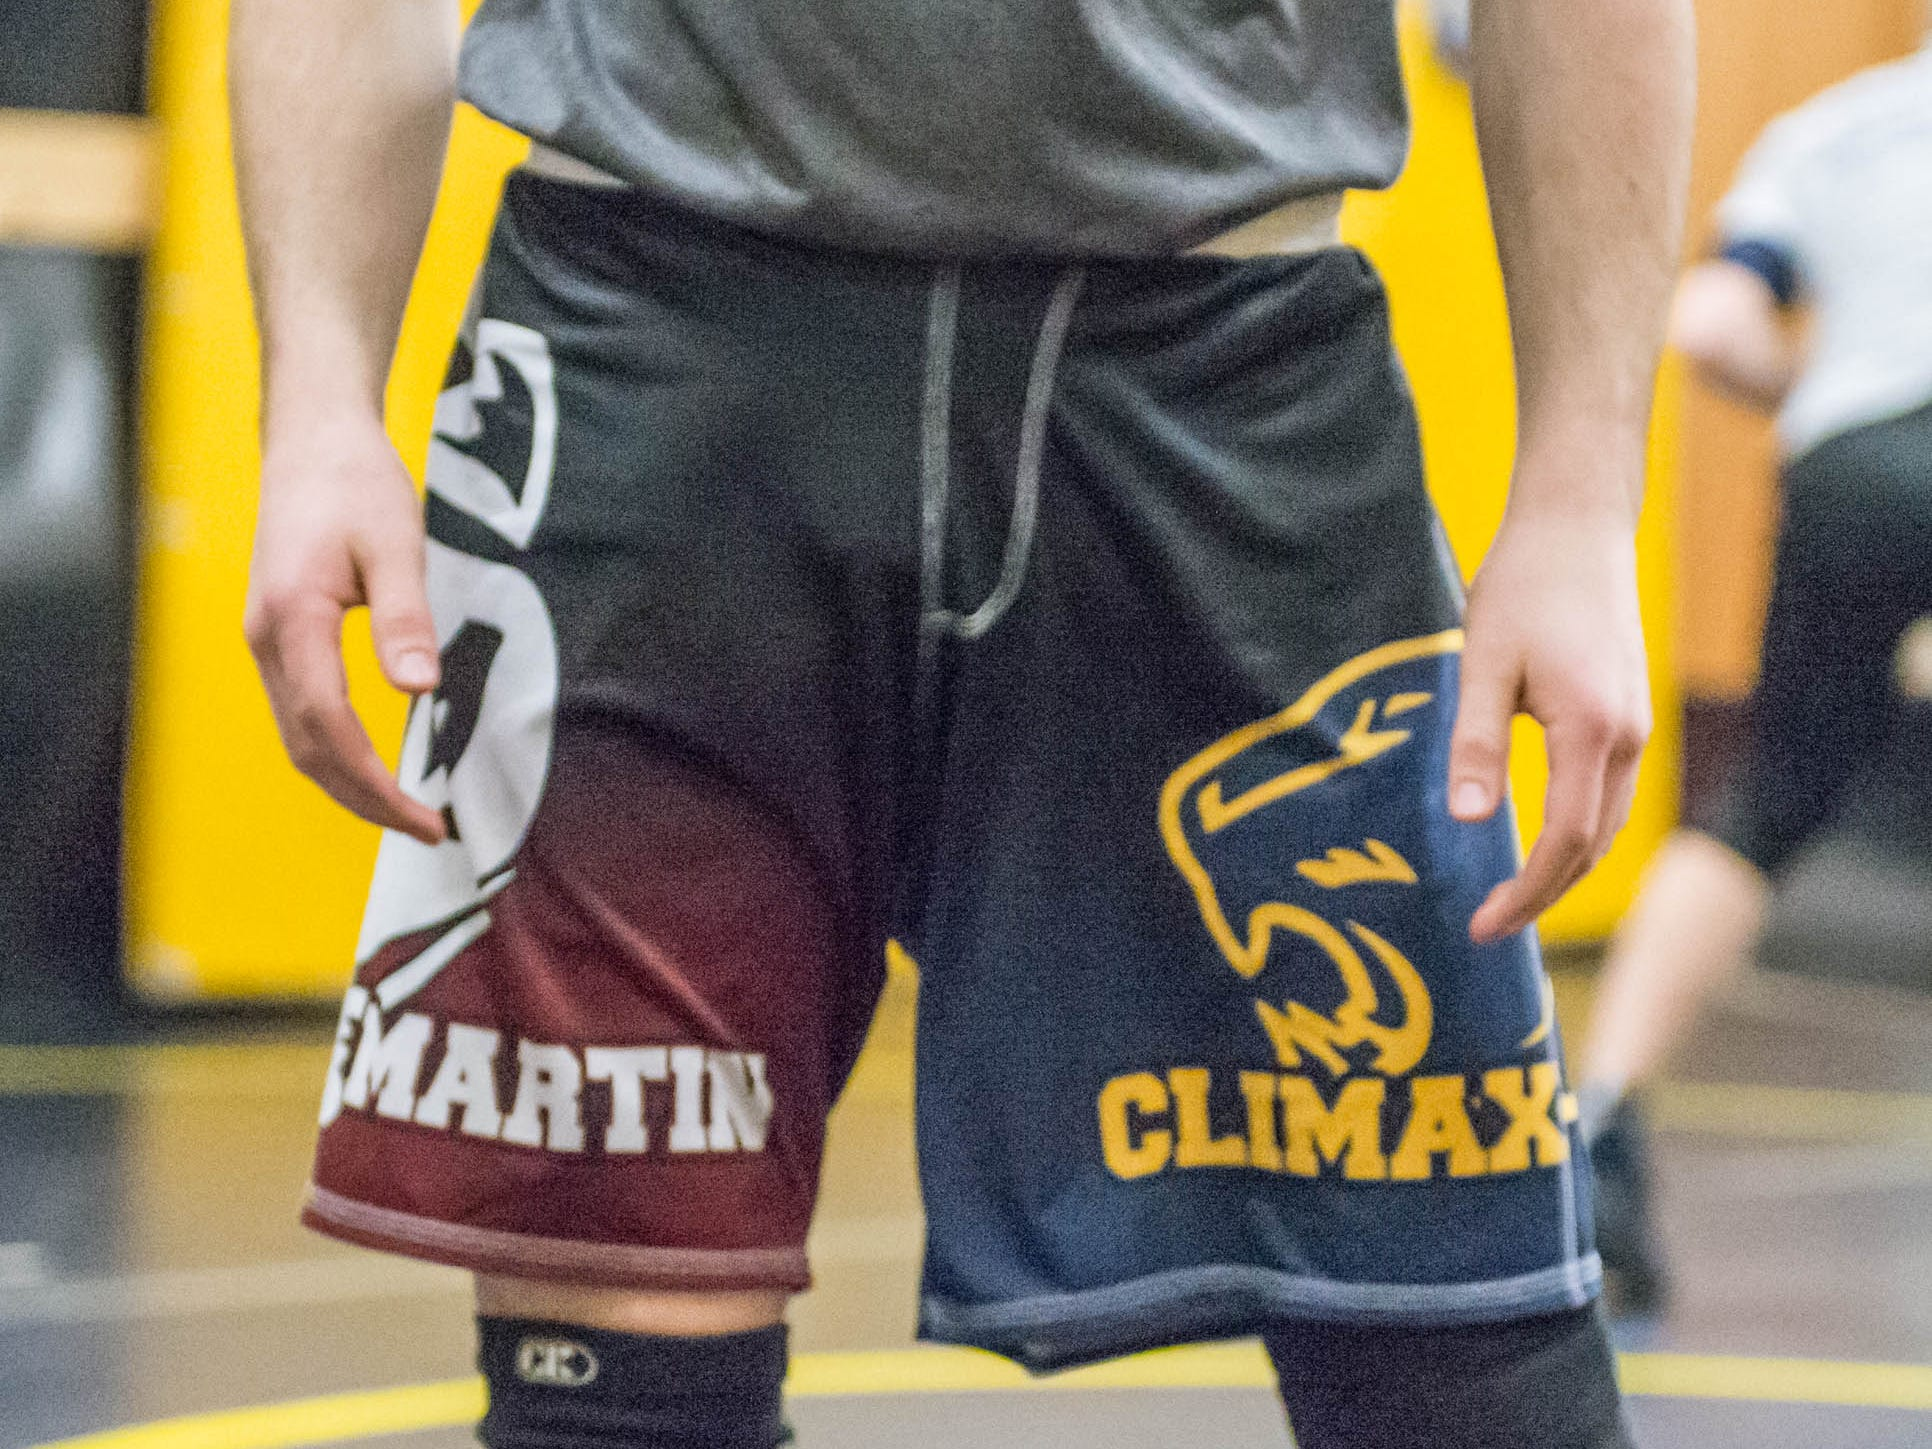 Co-op wrestling team shorts for Climax-Scotts and Martin.